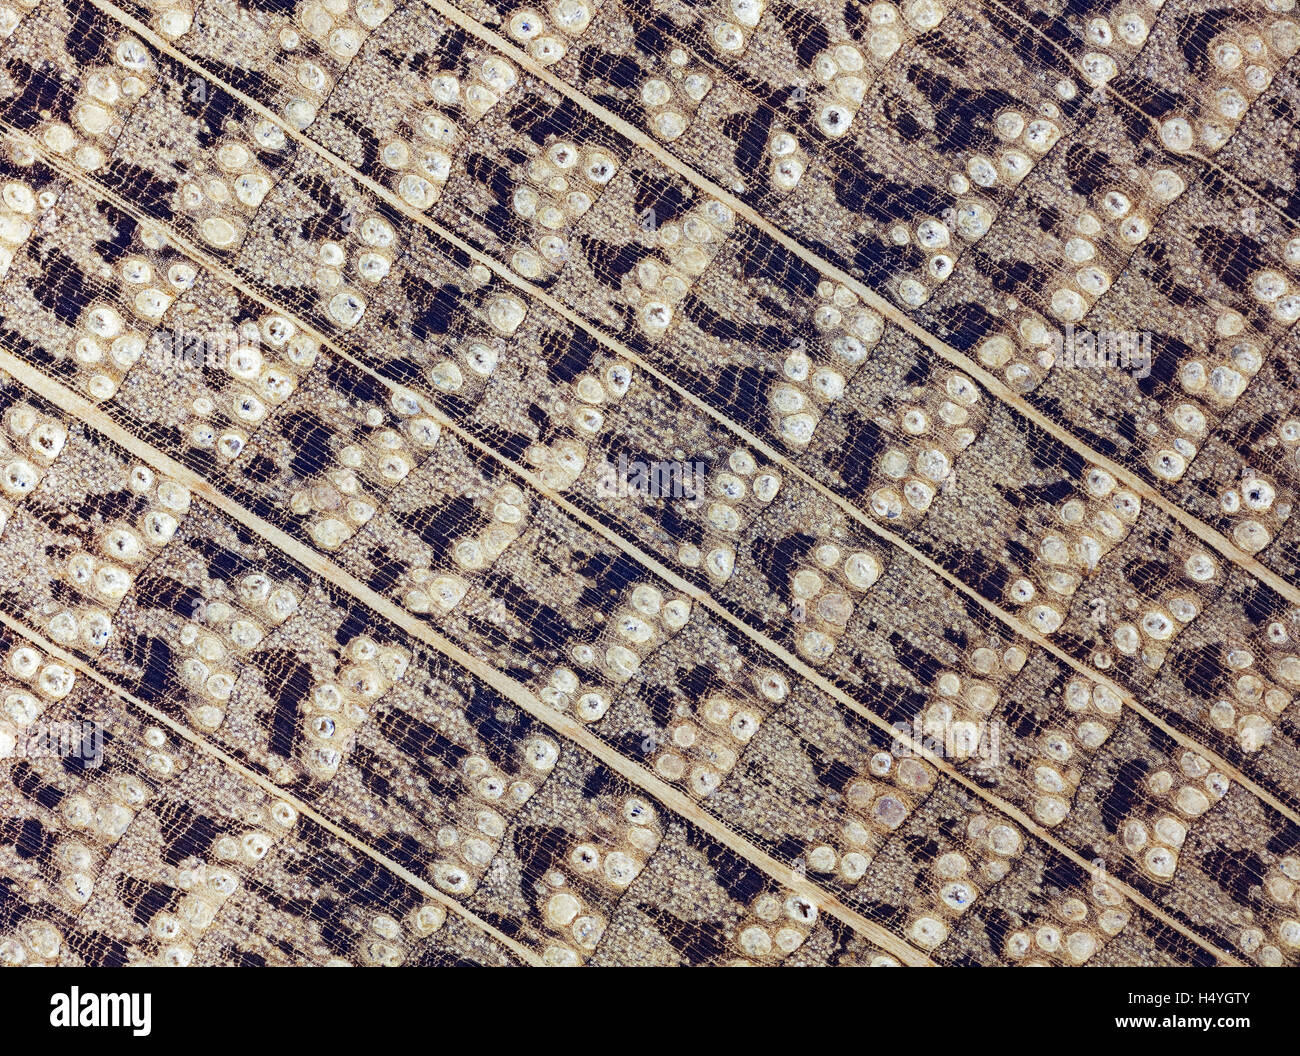 Oak, oak wood, polished, cross section of the trunk, photomicrograph, doubled in size, incident light - Stock Image